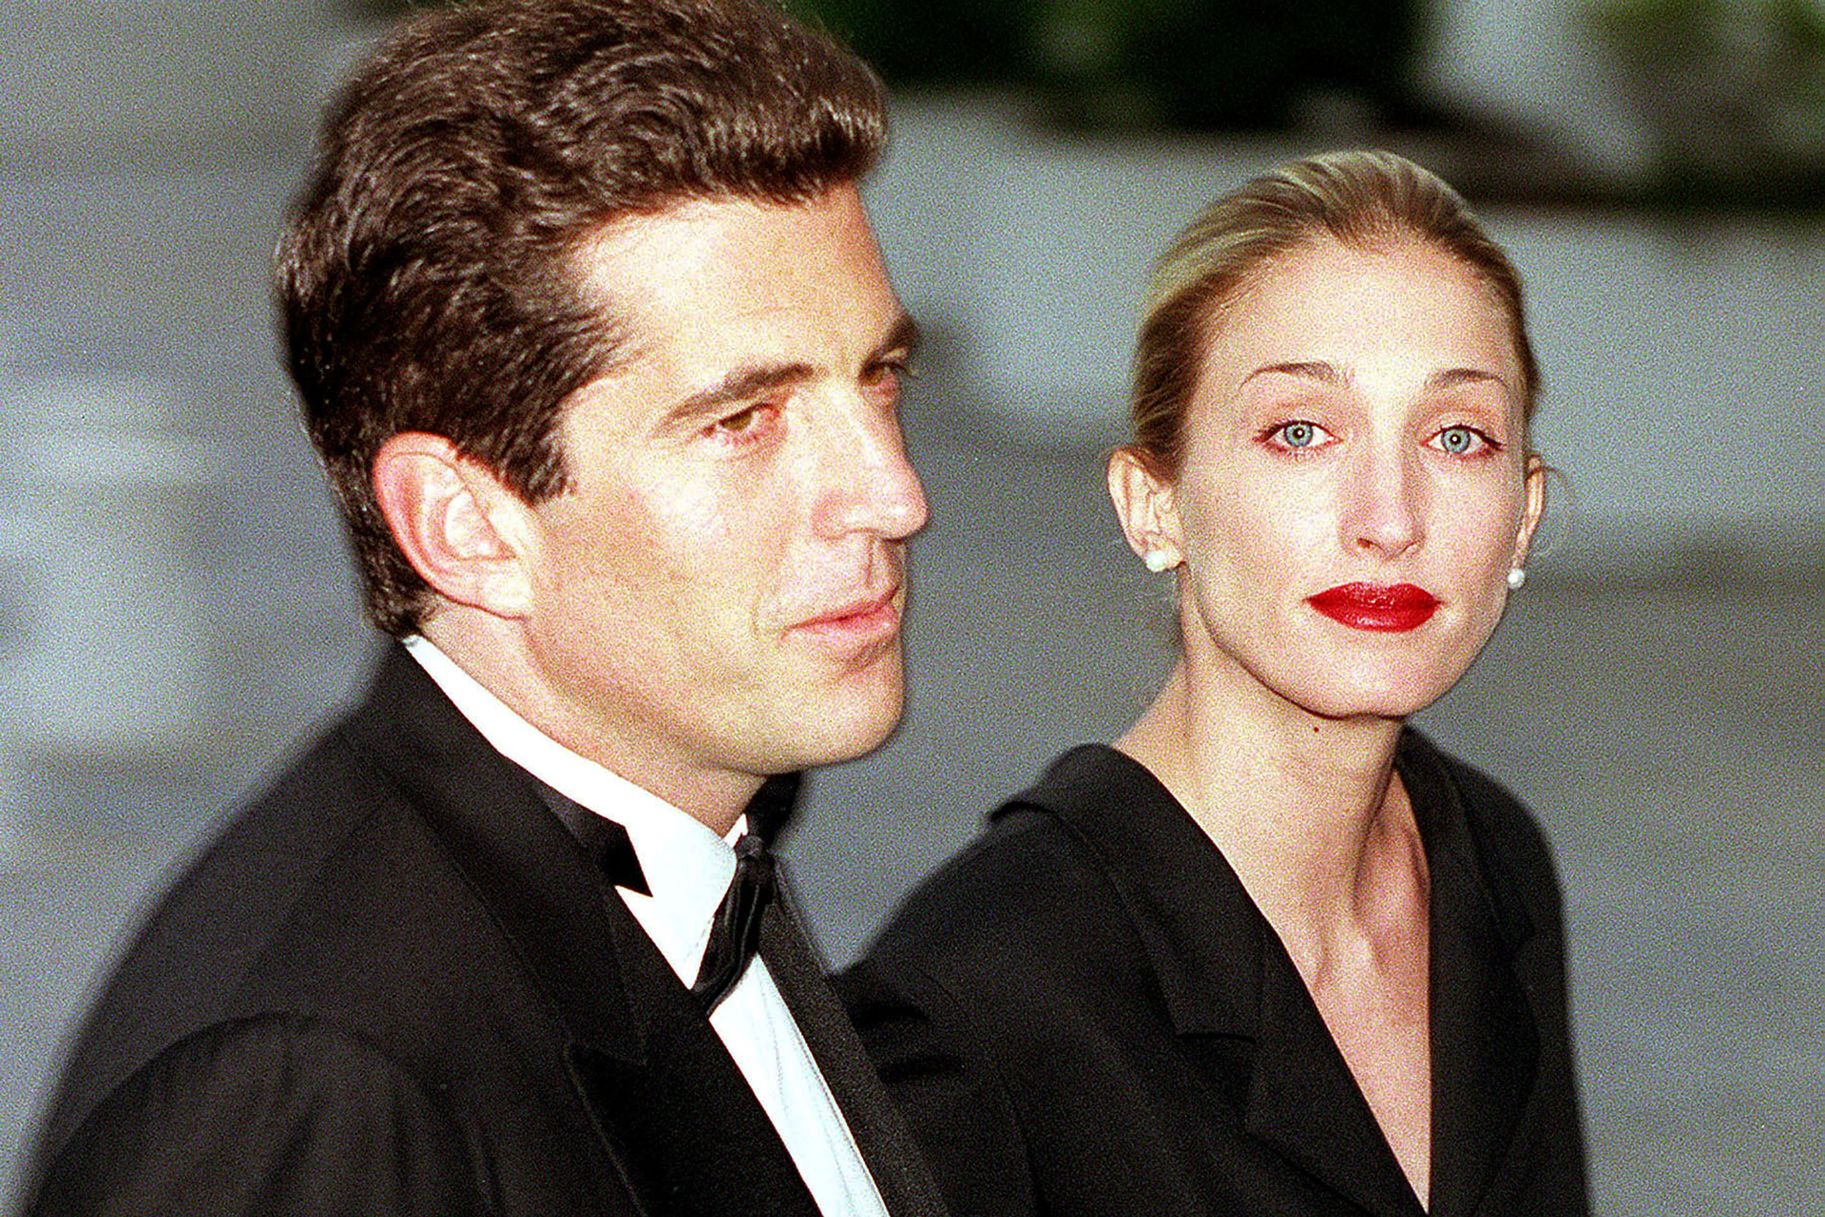 Carolyn and John Kennedy (With images)   Carolyn bessette